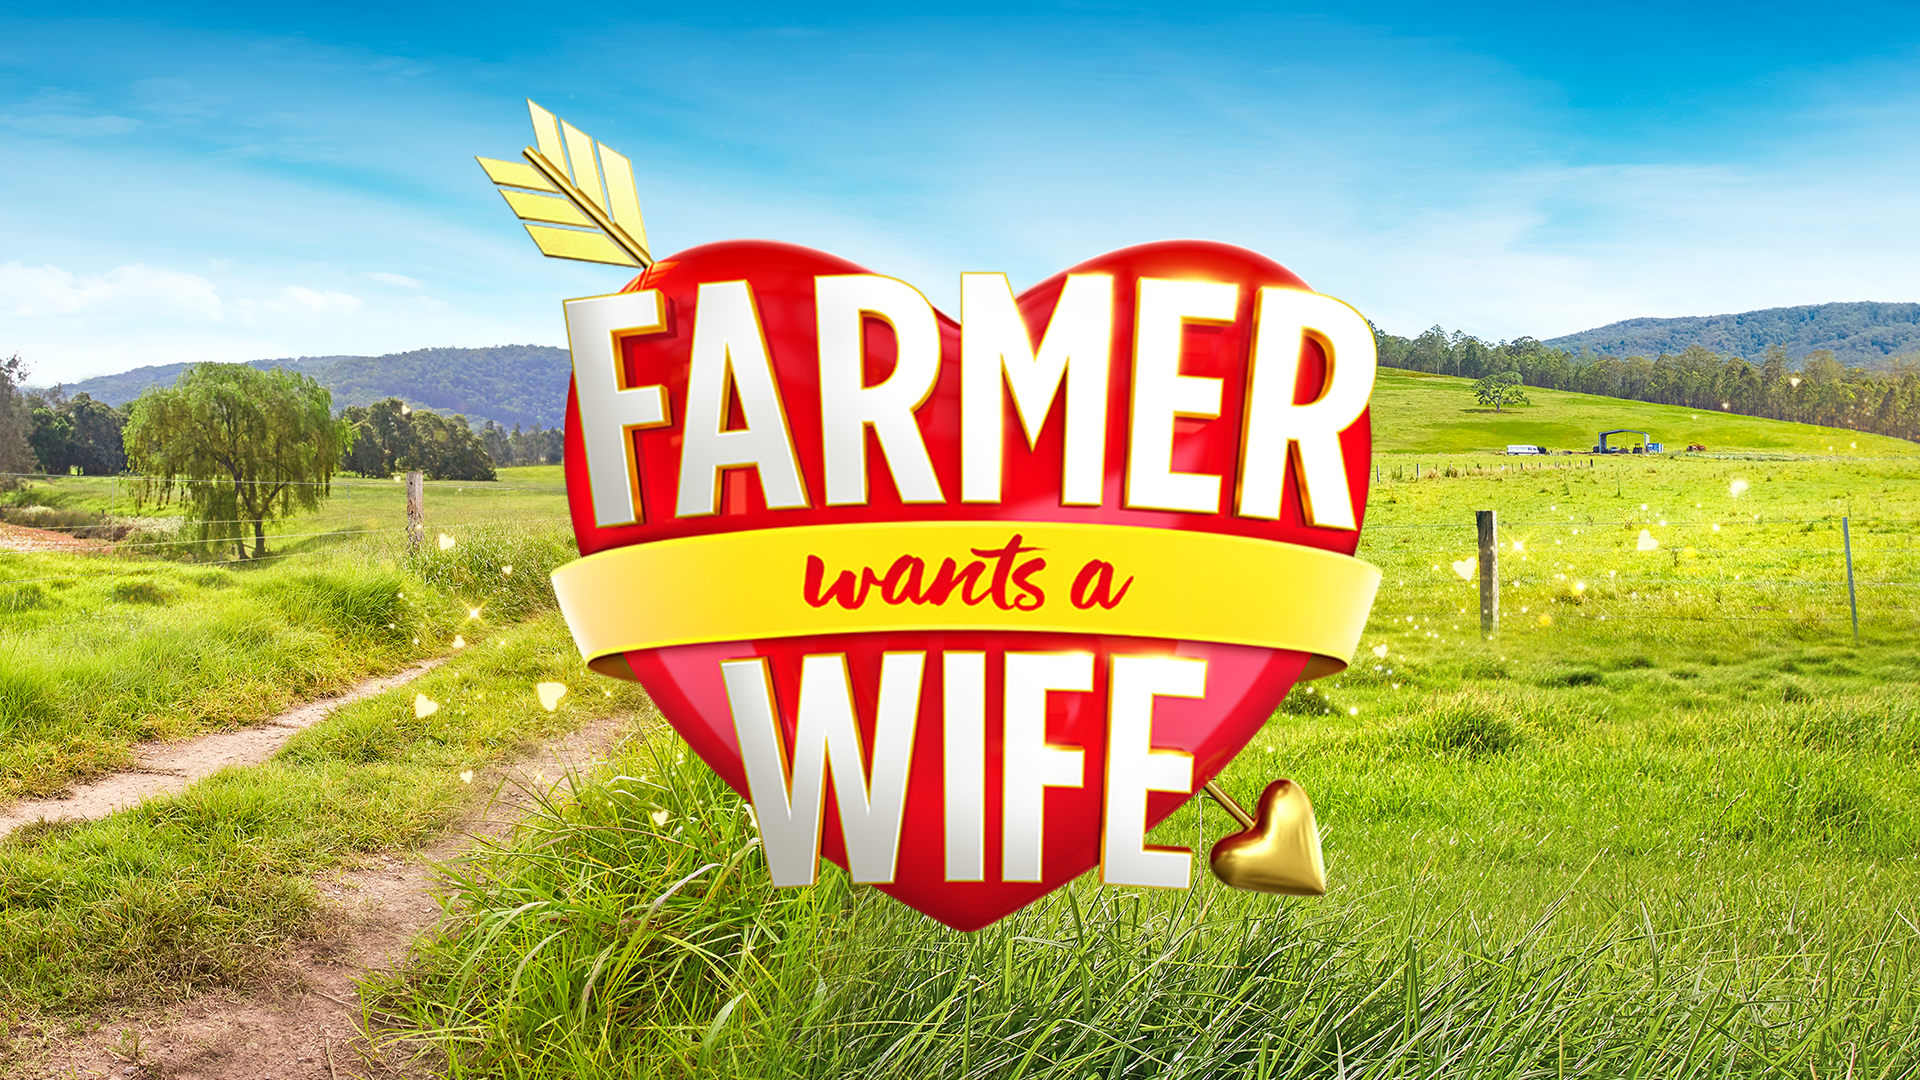 Looking for real love? Ask a farmer's wife!